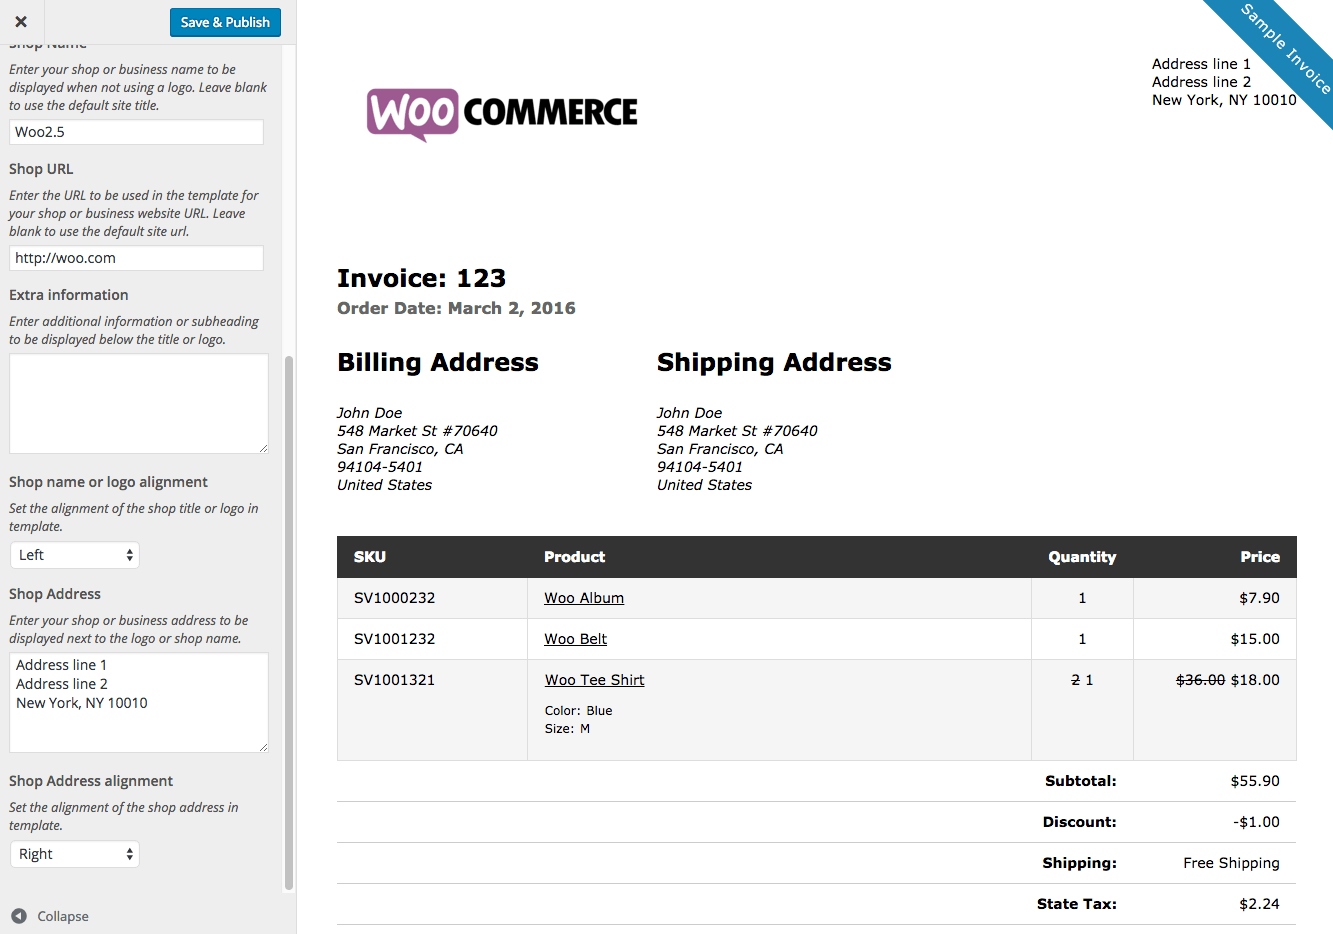 Usdgus  Stunning Woocommerce Print Invoices Amp Packing Lists  Woocommerce Docs With Fair Woocommerce Print Invoices  Packing Lists Customizer With Cool Potato Receipts Also American Deposit Receipts In Addition Global Depositary Receipt And Cash Receipt Format In Excel As Well As Receipts And Payments Additionally How To Write A Receipt For A Car From Docswoocommercecom With Usdgus  Fair Woocommerce Print Invoices Amp Packing Lists  Woocommerce Docs With Cool Woocommerce Print Invoices  Packing Lists Customizer And Stunning Potato Receipts Also American Deposit Receipts In Addition Global Depositary Receipt From Docswoocommercecom